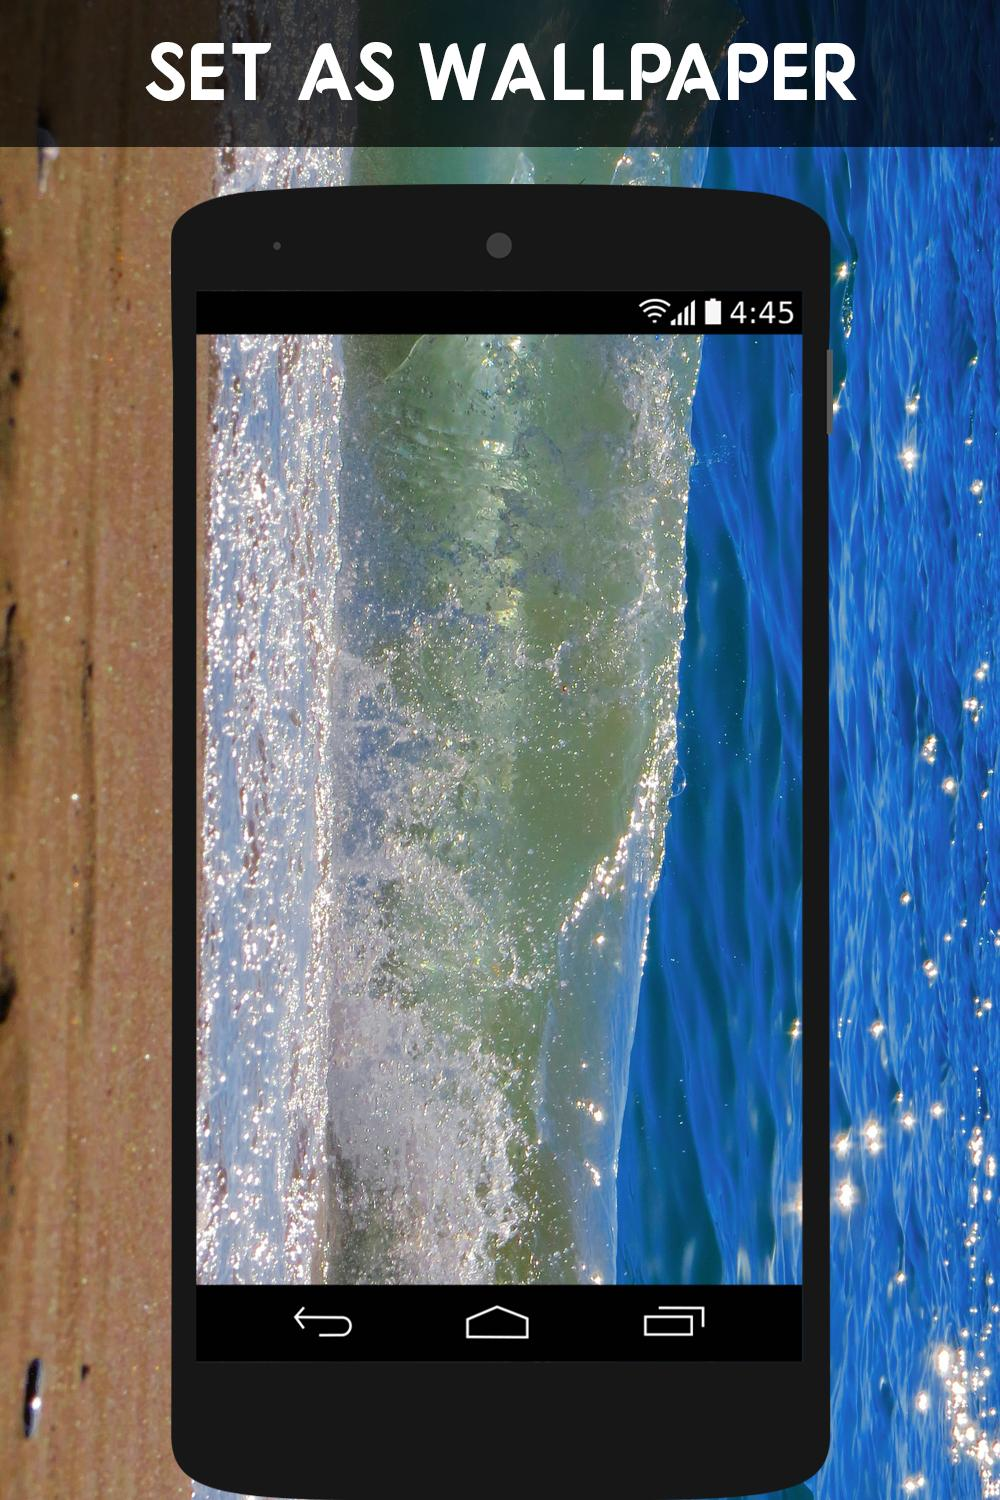 HD Google Pixel 2 & Video Live Wallpapers for Android - APK